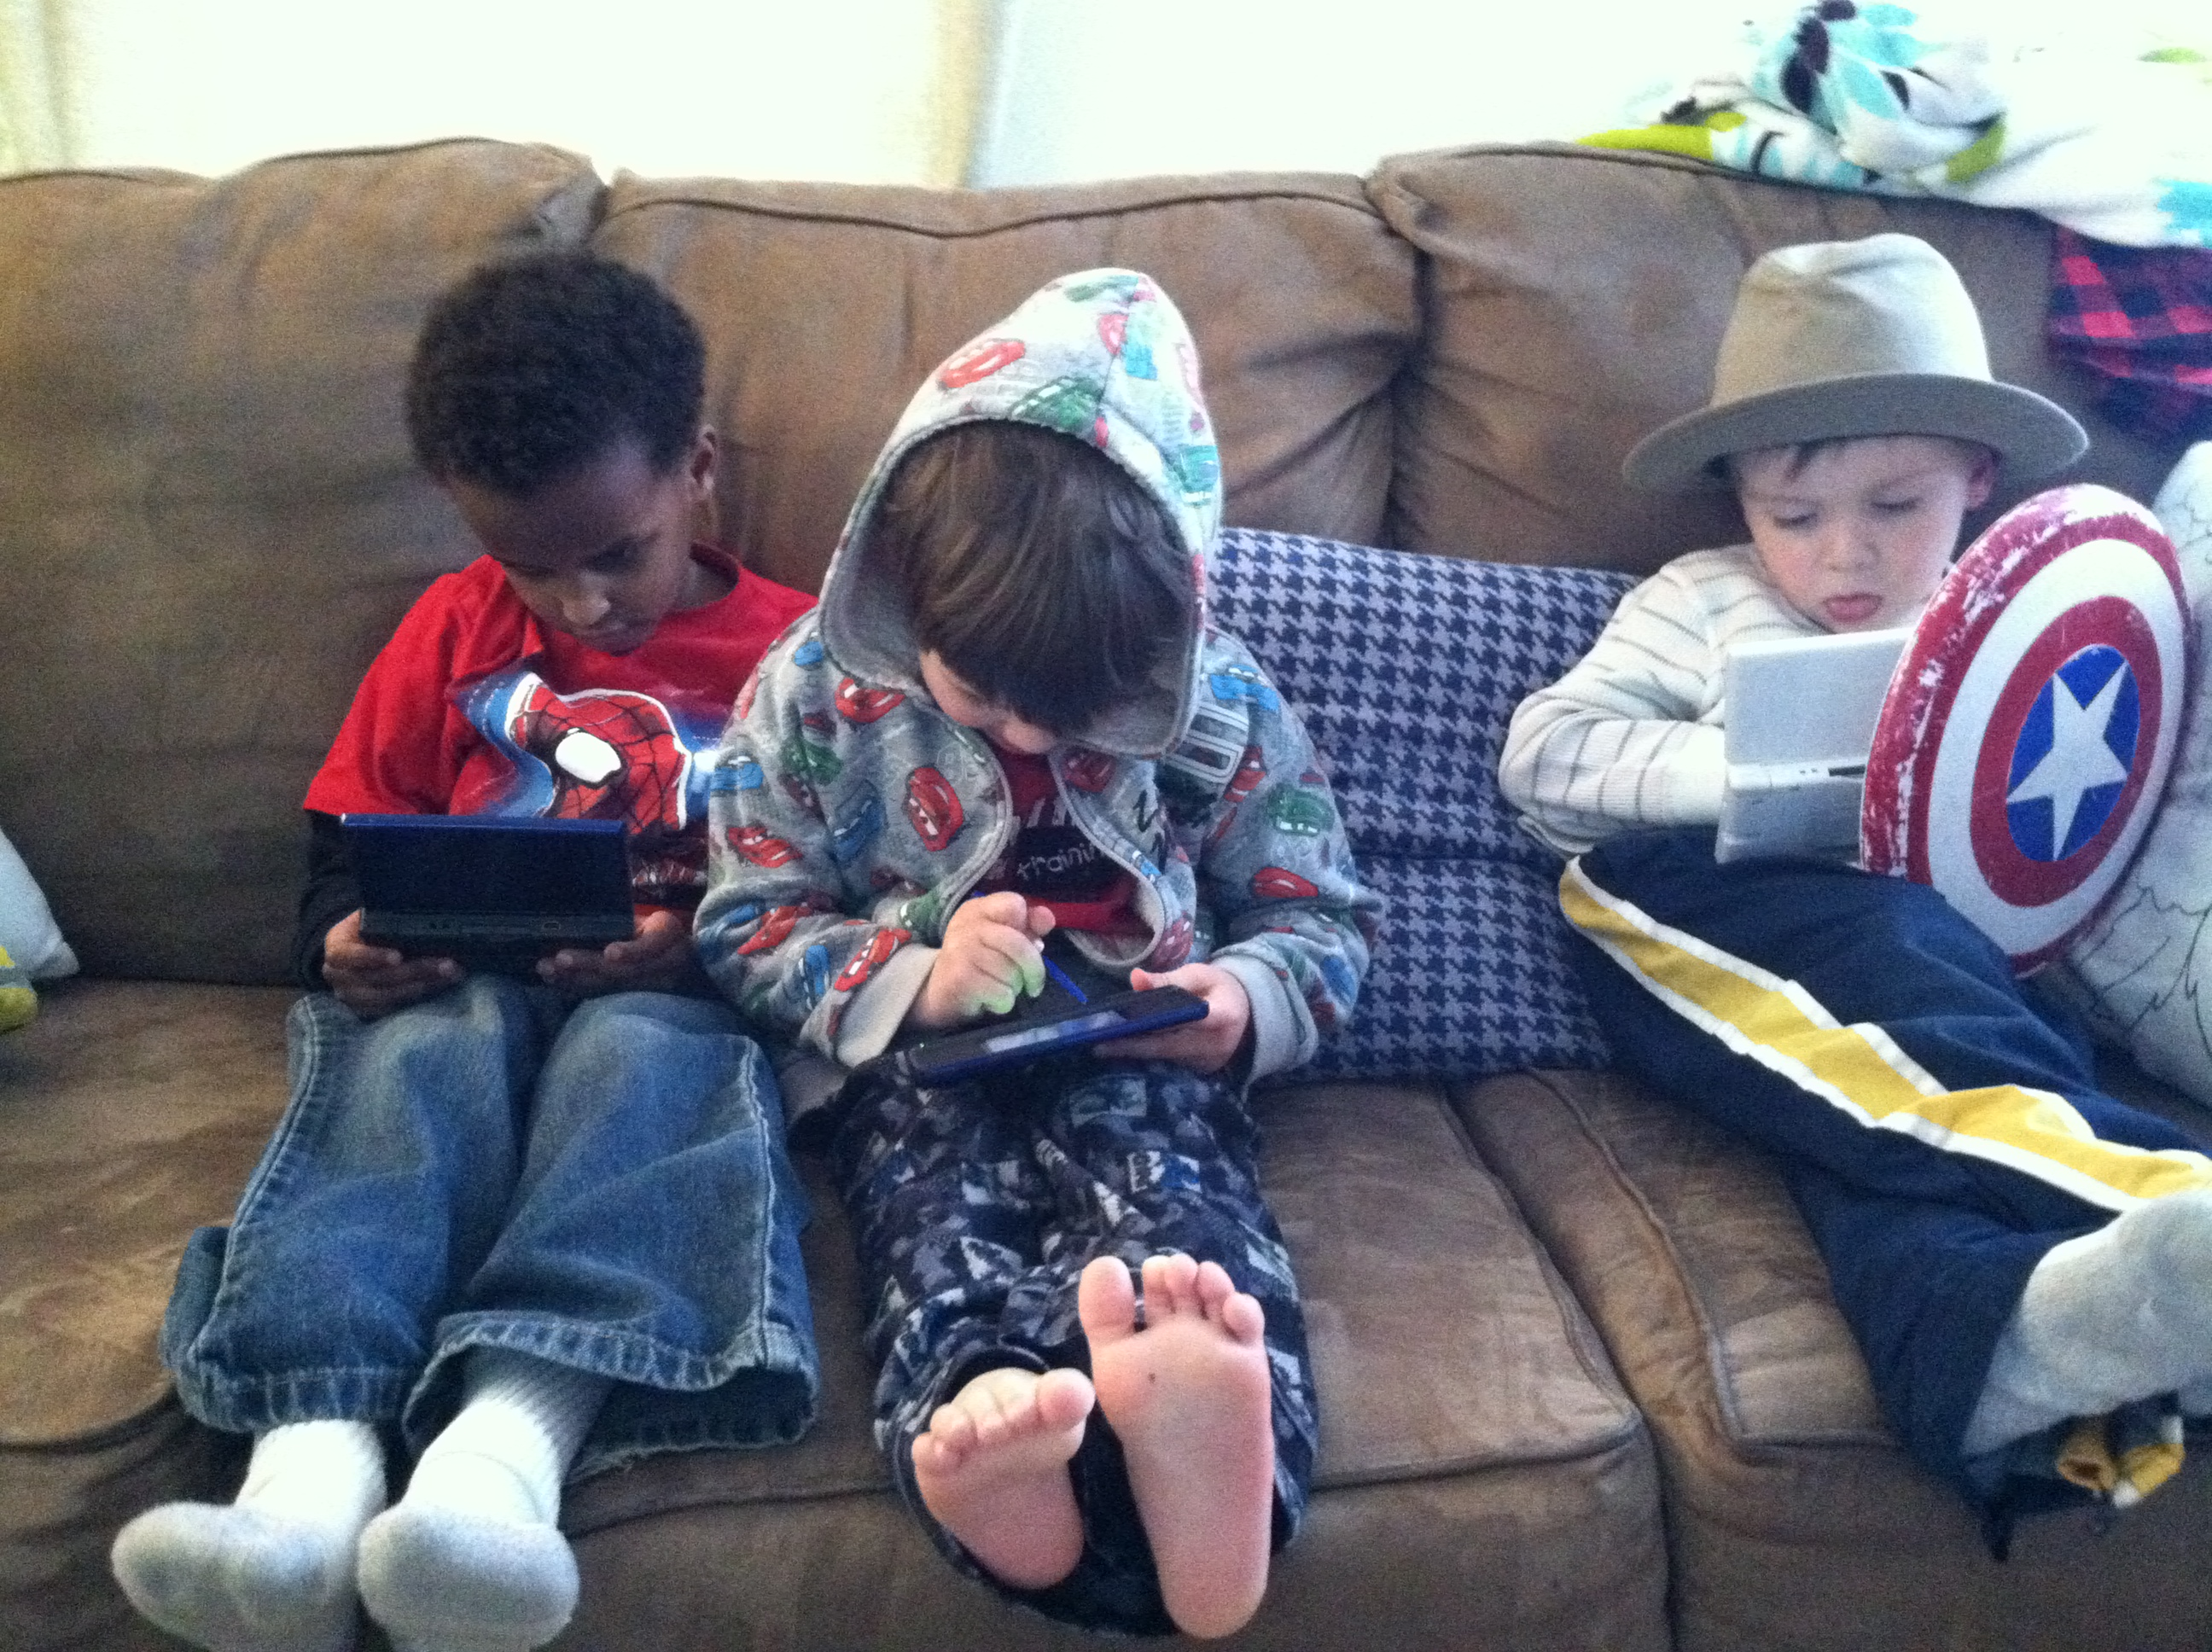 Kids playing DS